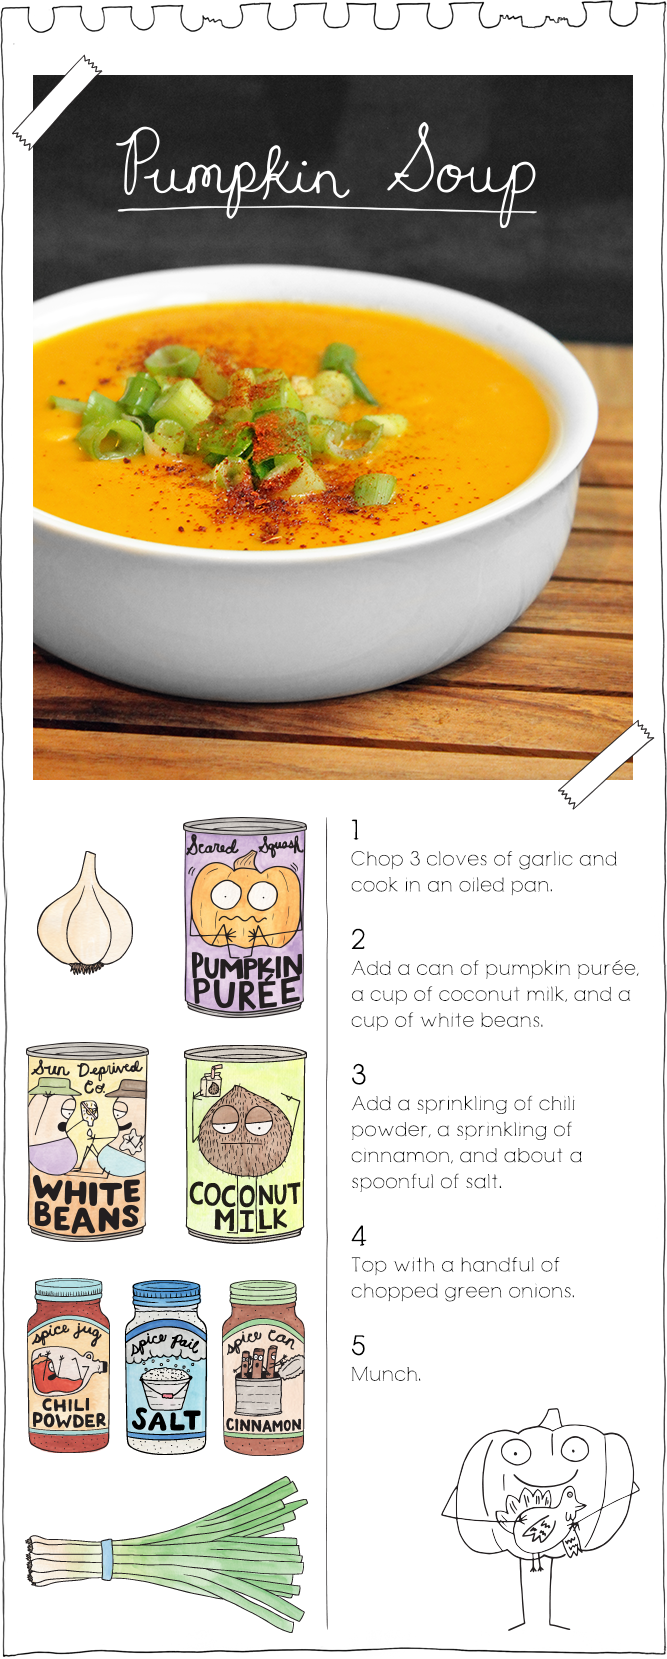 The Vegan Stoner's Pumpkin Soup